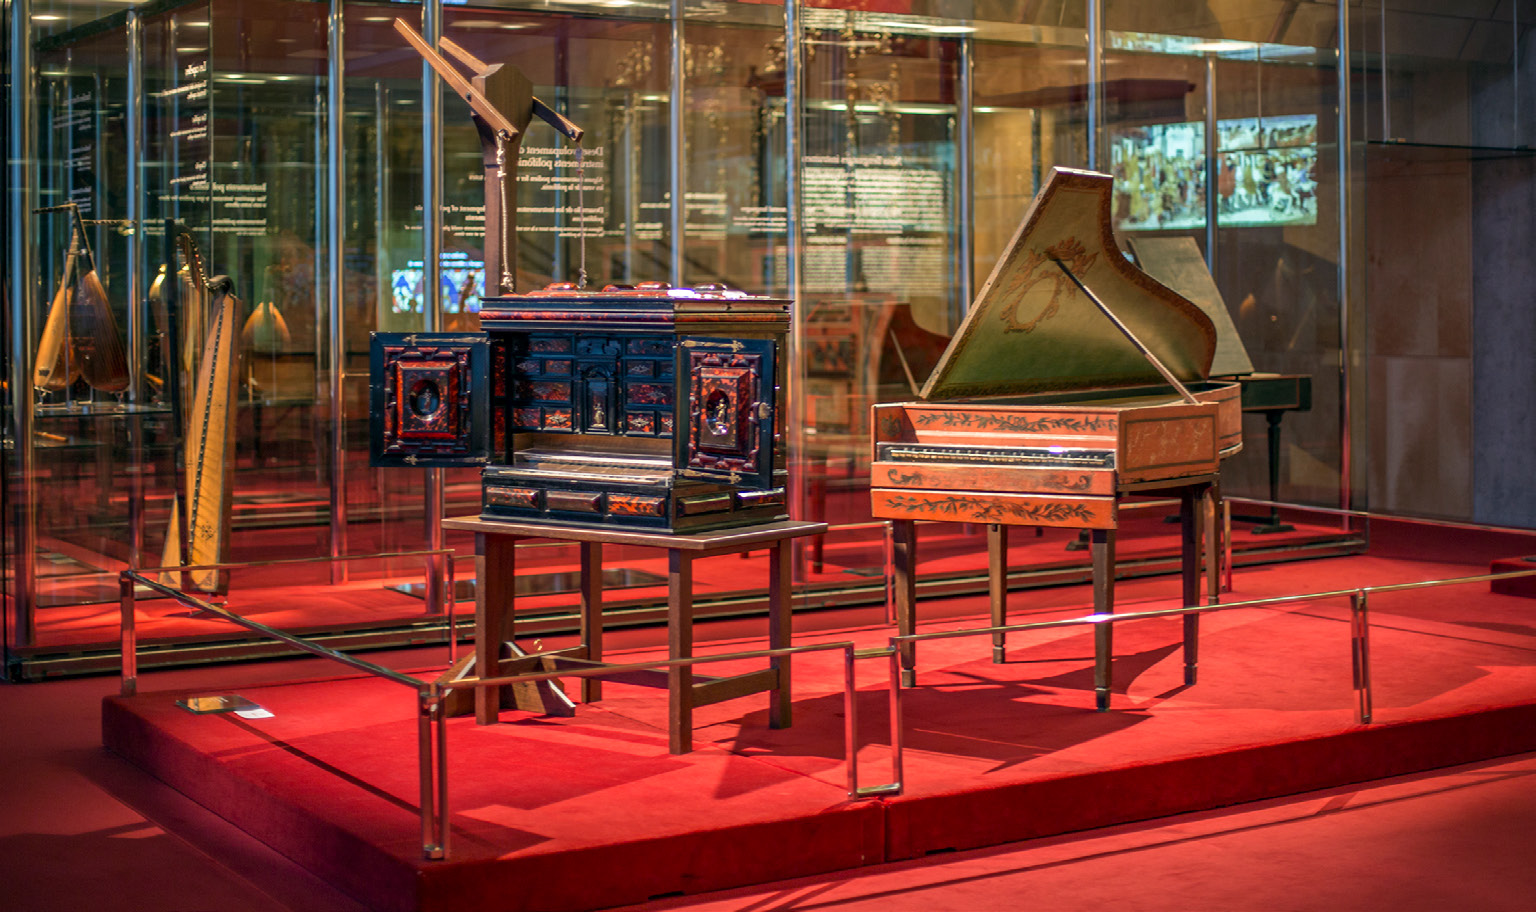 FIGURE-5-Claviorgan-by-Lorenz-Hauslaib-(c.-1600)-and-harpsichord-by-Carl-Conrad-Fleischer-(Hamburg,-1720,-photo-Guastevì